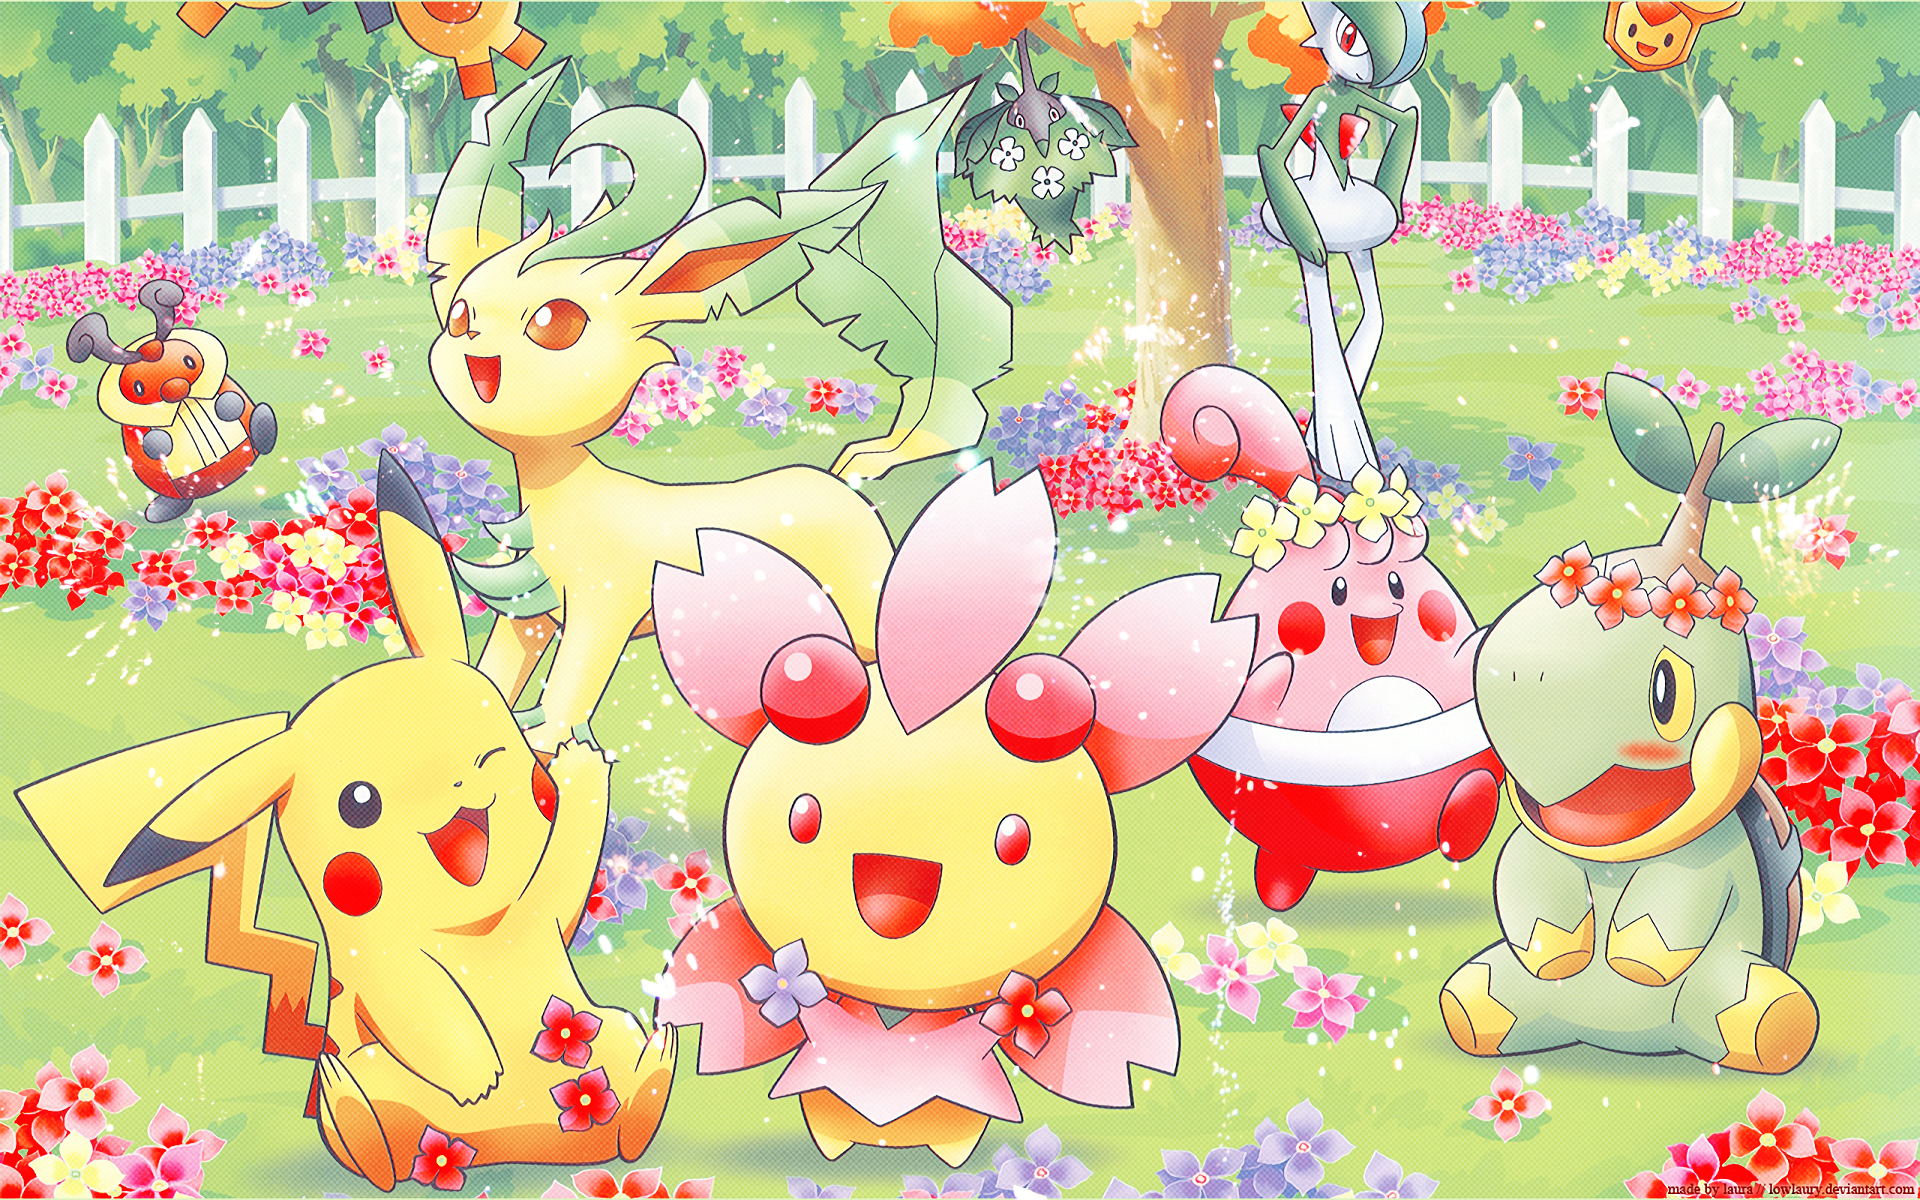 Kawaii Pokemon Desktop Wallpaper Pokemon Spring Hd Wallpaper Background Image 1920x1200 Cute Pokemon Cute Pokemon Wallpaper Pokemon Backgrounds Cute Pokemon